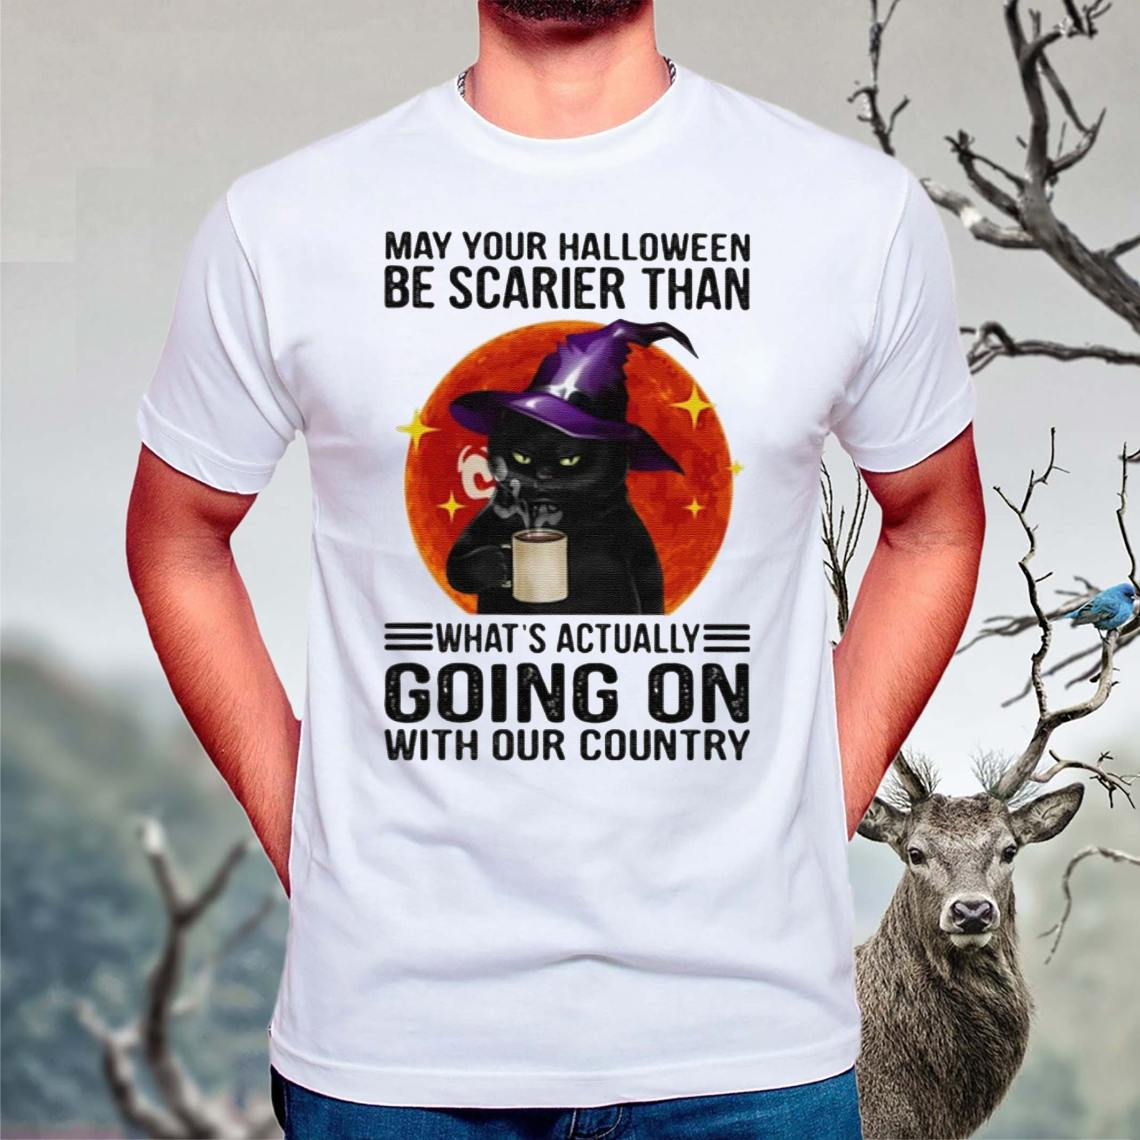 May-your-Halloween-be-scarier-than-what's-actually-going-on-with-our-country-t-shirts